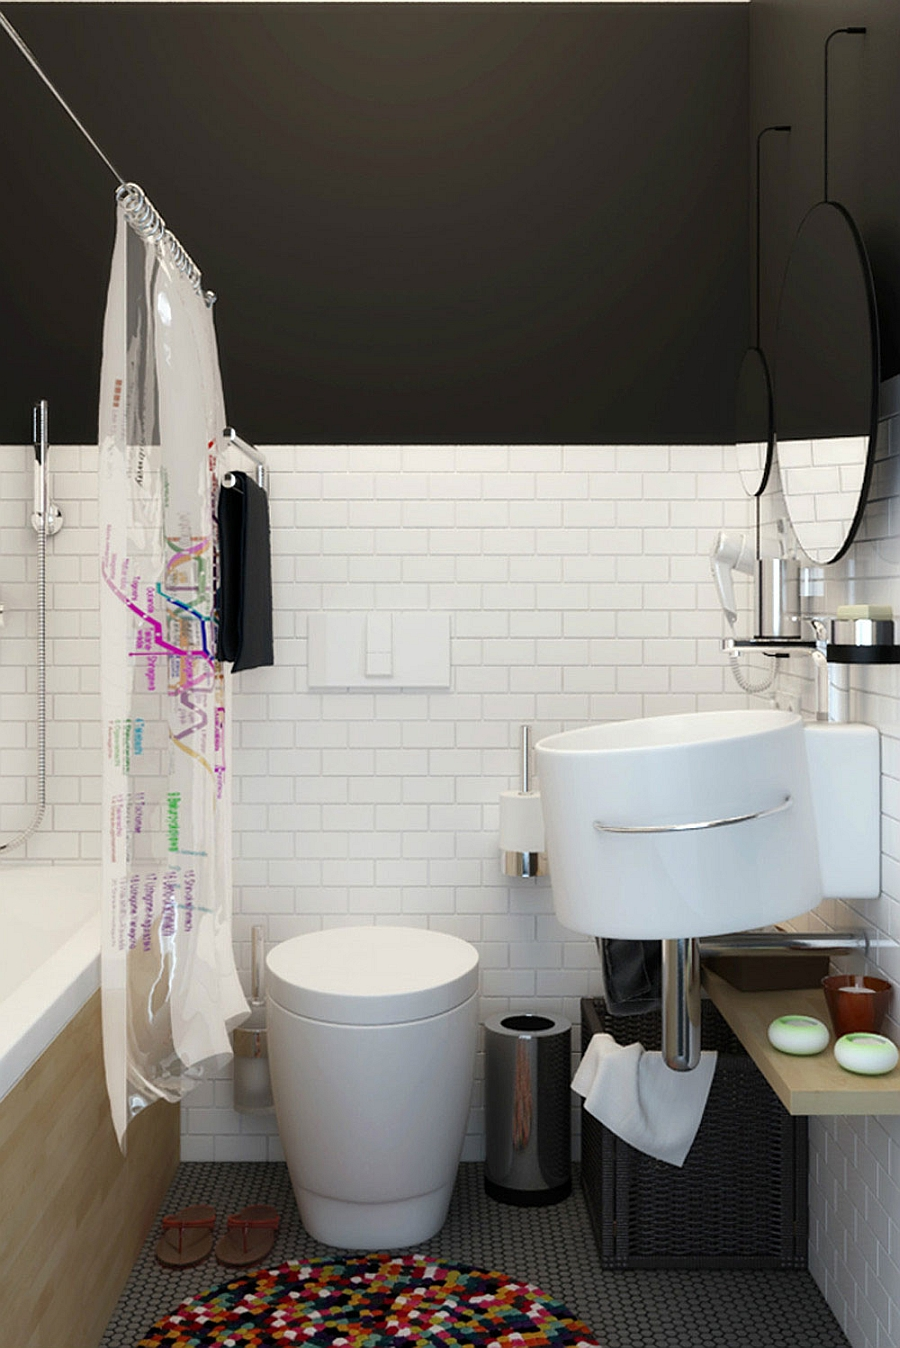 Tiny Apartment In Black And White Charms With Space-Saving ...